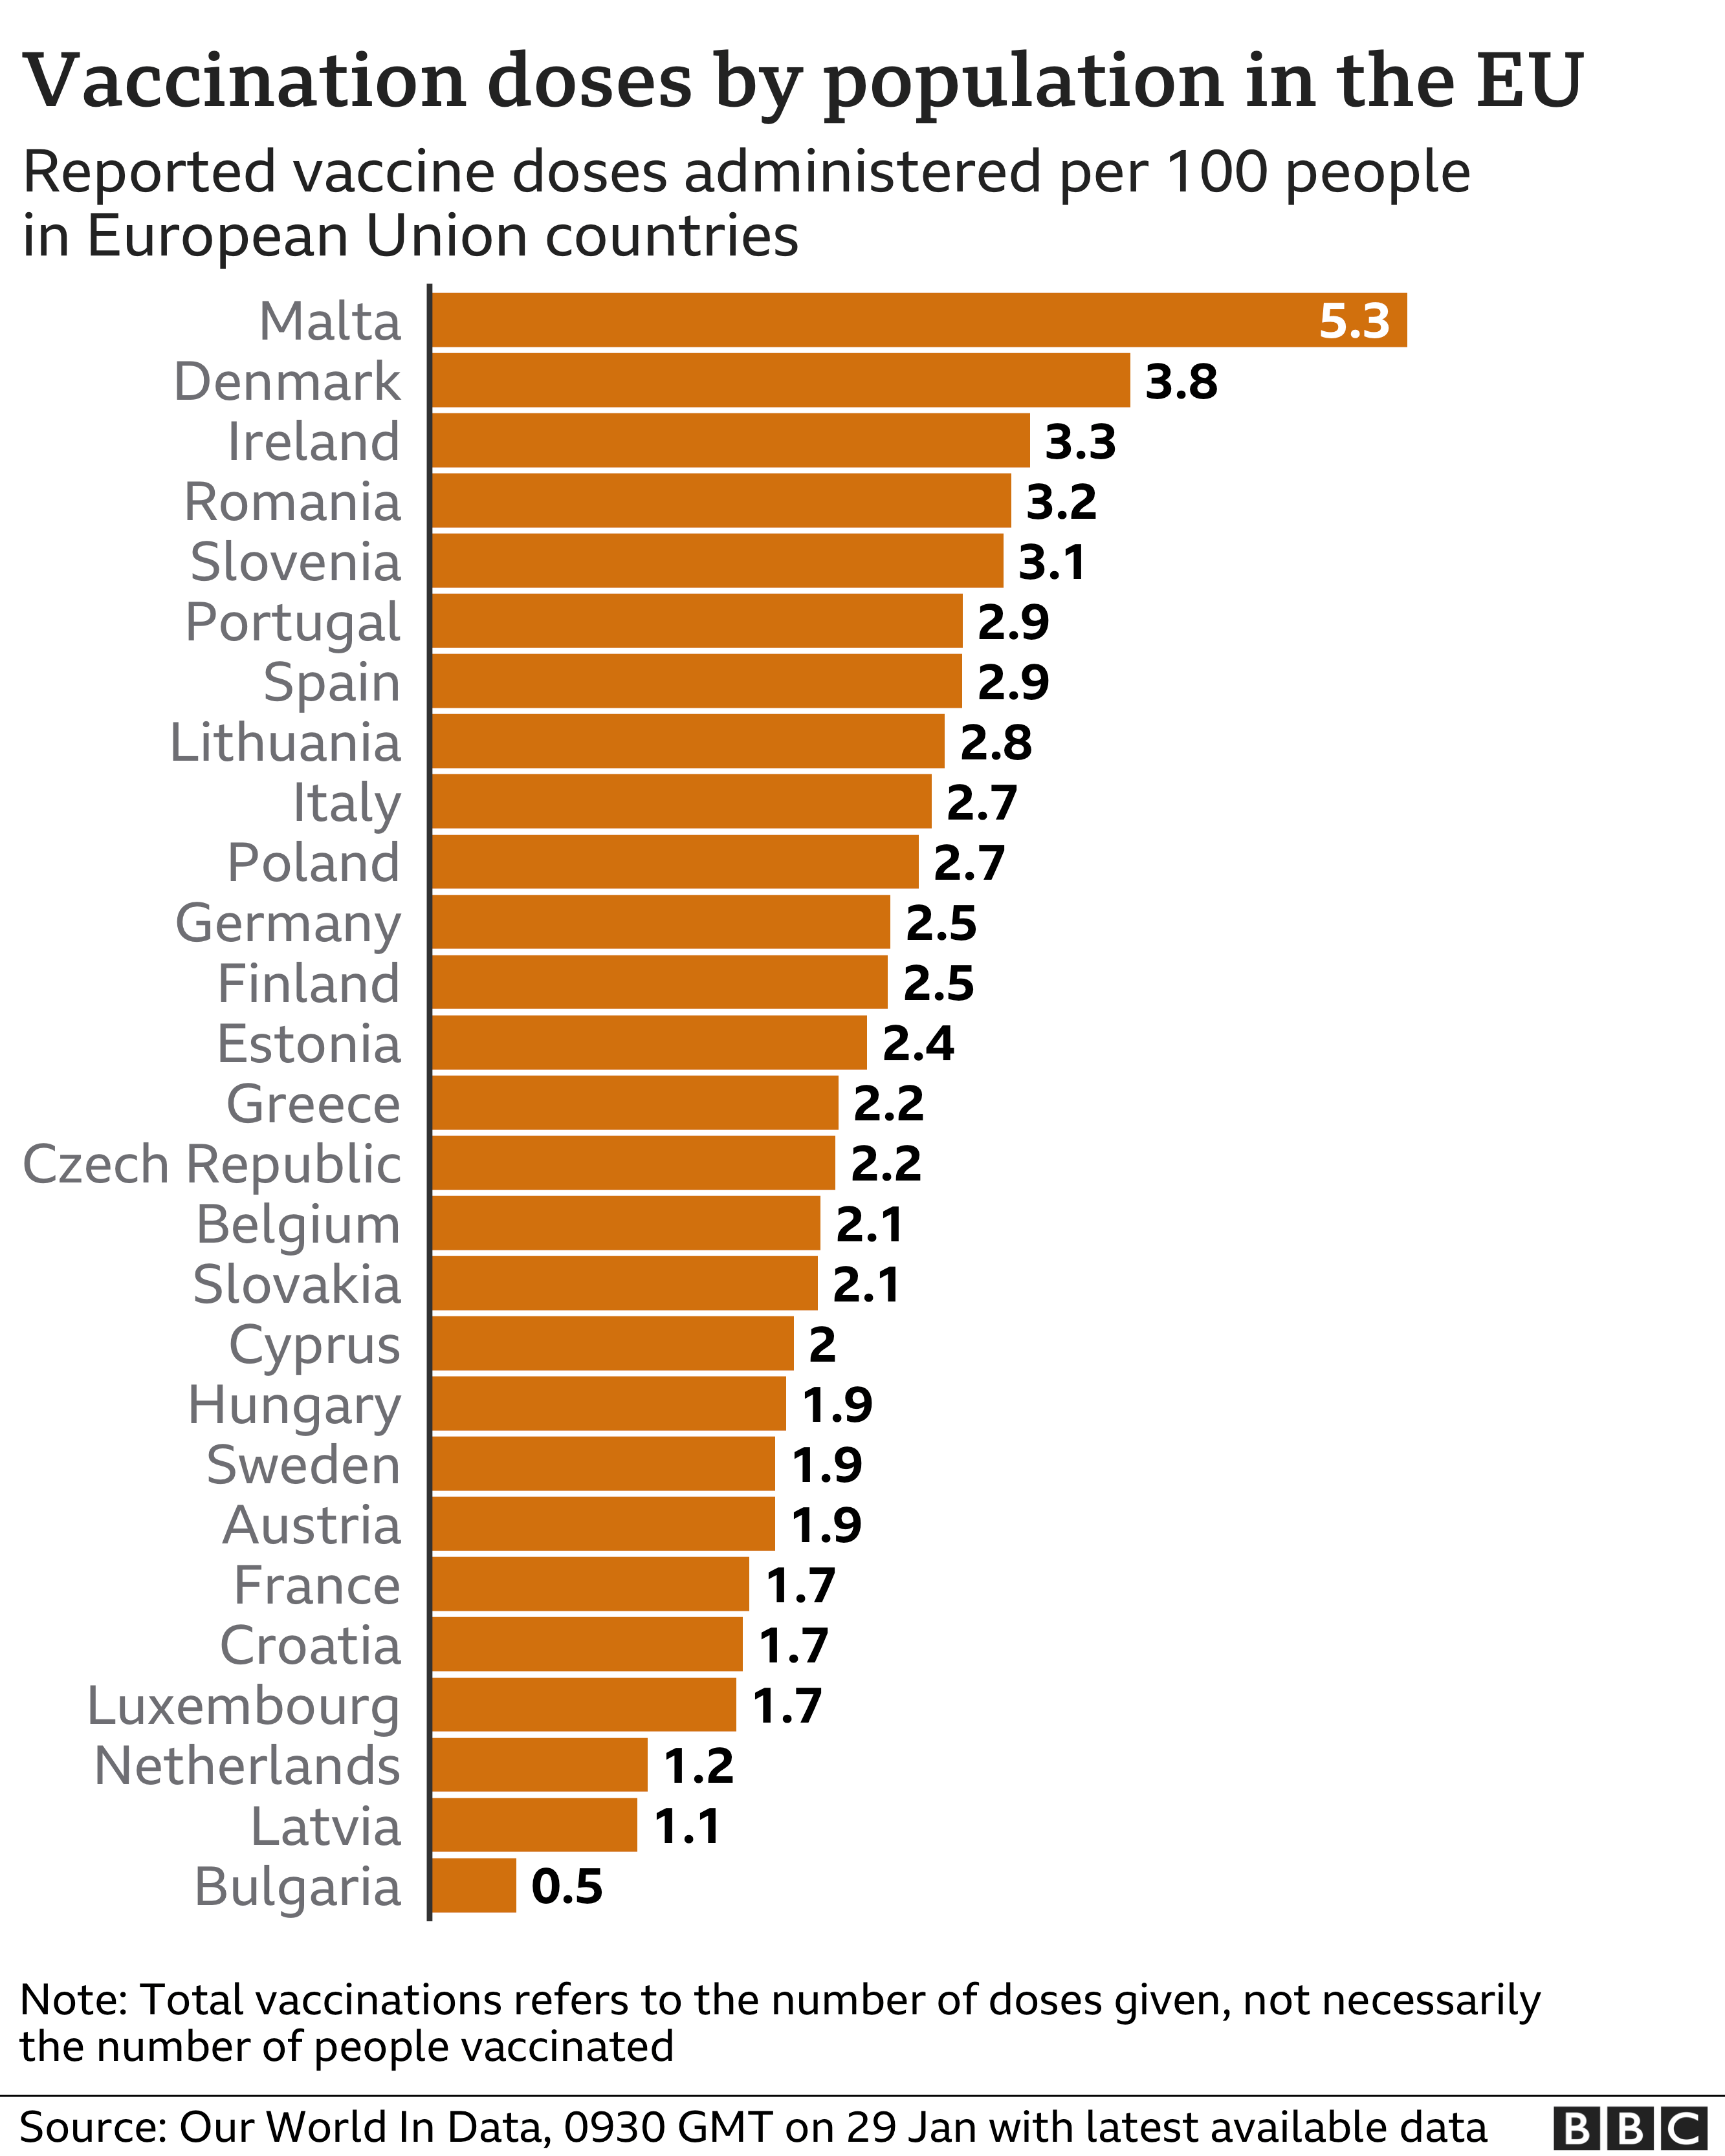 Chart showing the number of vaccines administered per 100 people in EU countries